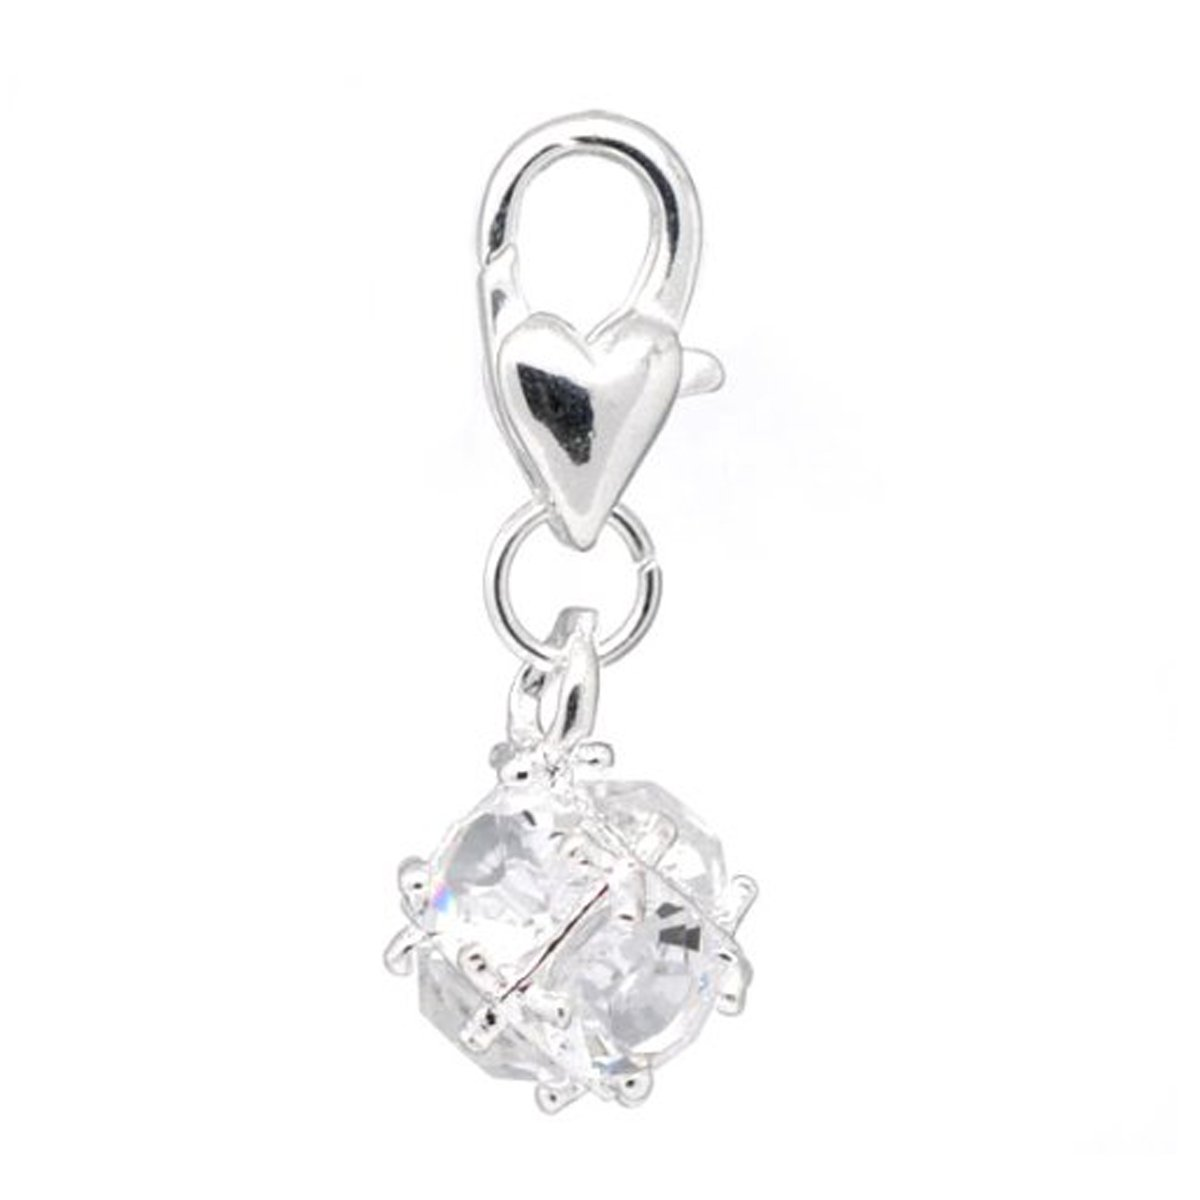 Clip on Big Sister Middle Sister Little Sister Dangle Pendant for European Clip on Charm Jewelry w//Lobster Clasp Choose Your Charm from Menu